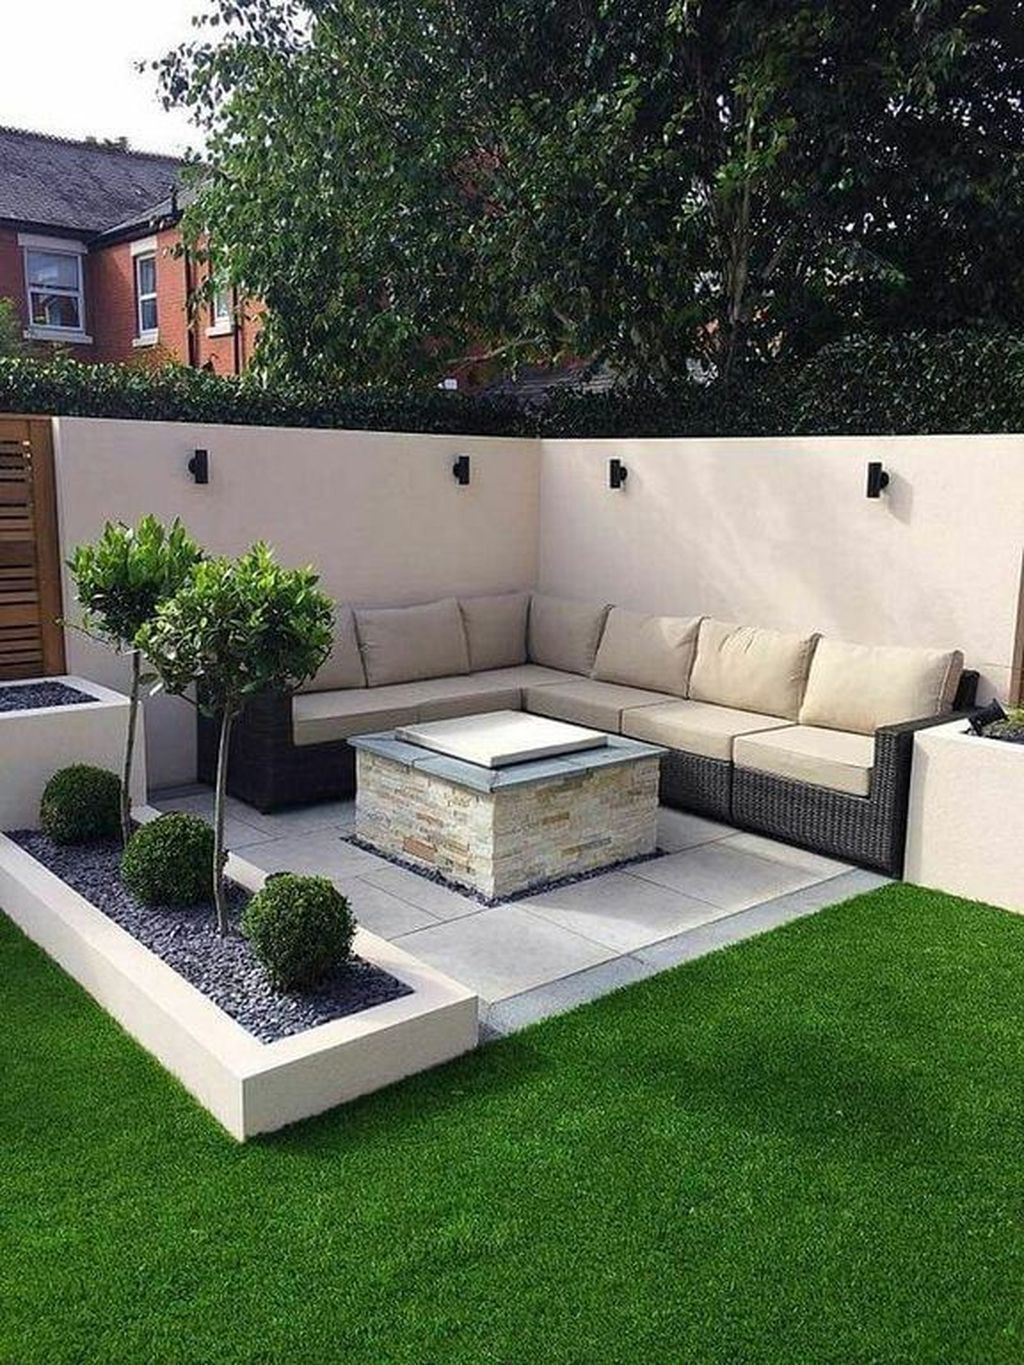 20 Attractive Small Backyard Design Ideas On A Budget In 2020